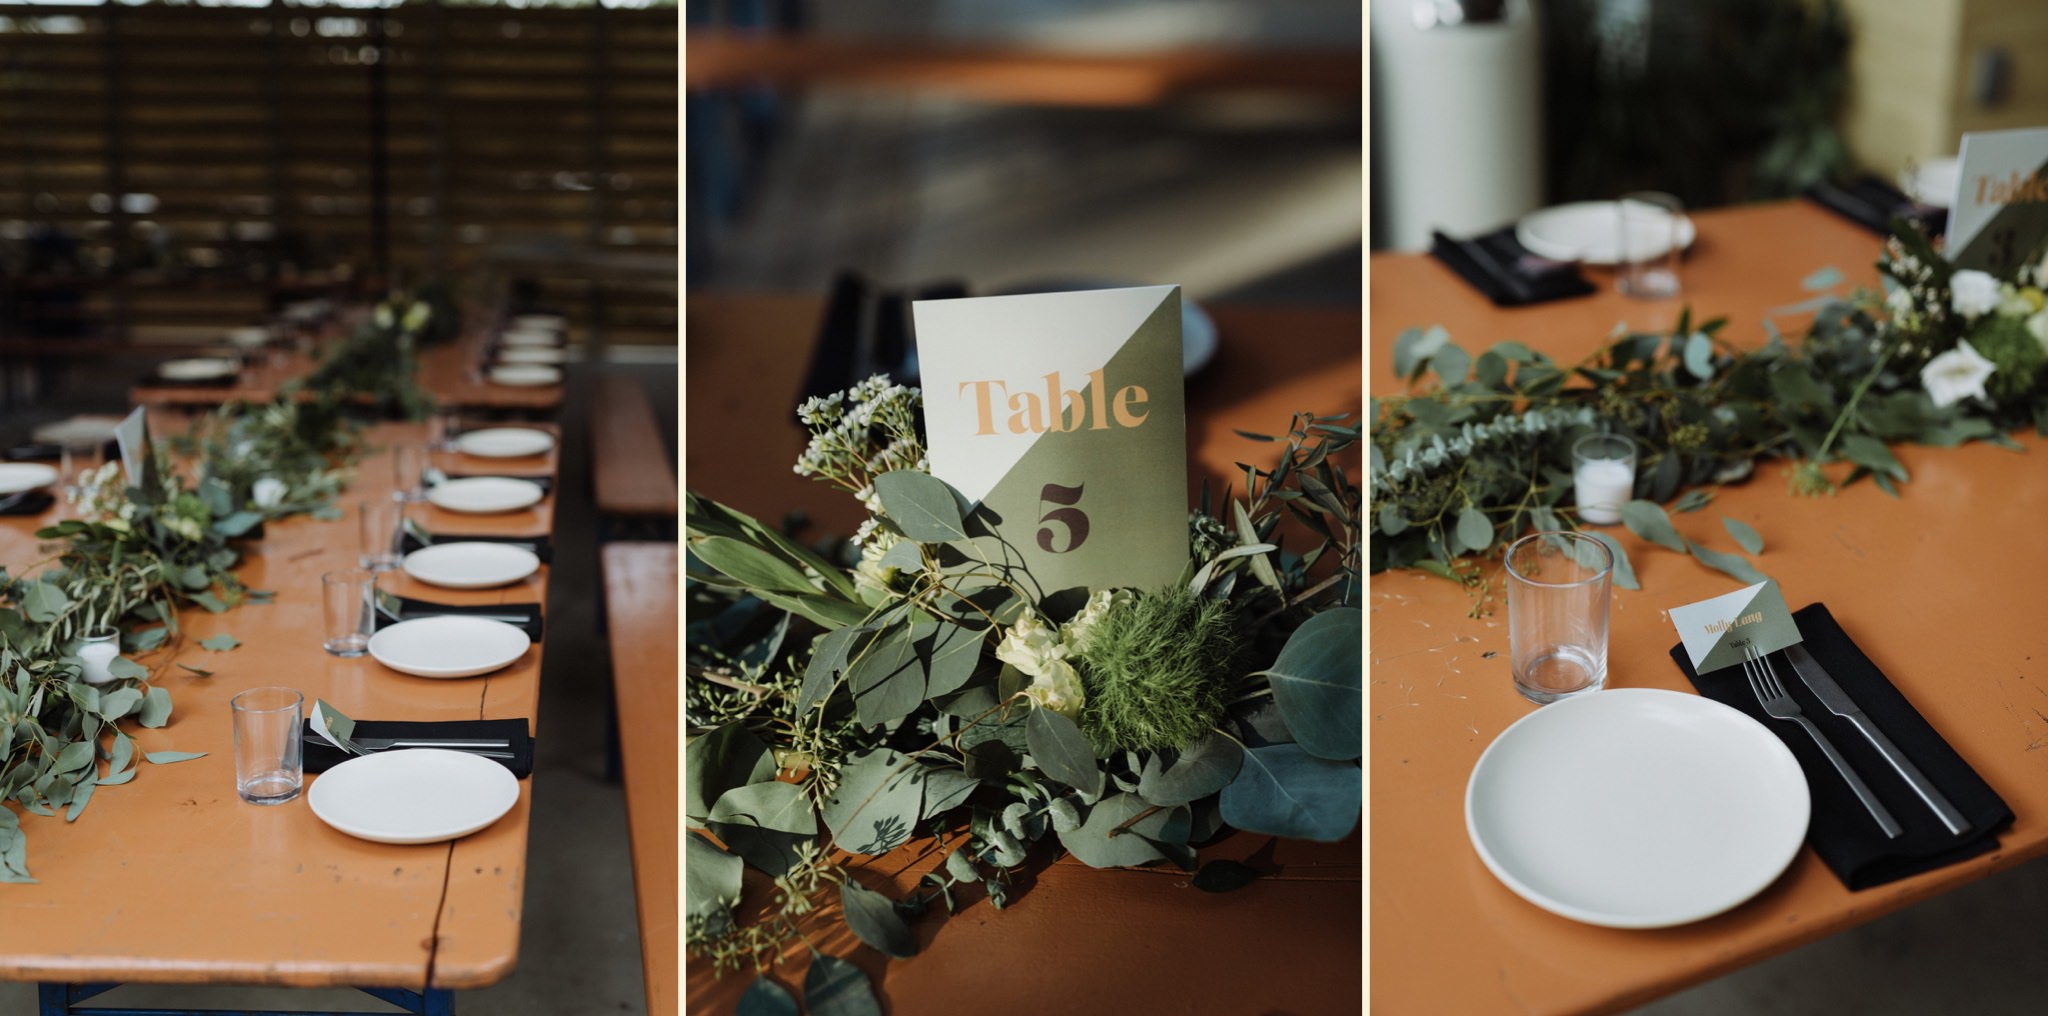 Foliage and greenery details with retro fonts at the family table style reception for a Carpenter Hotel wedding